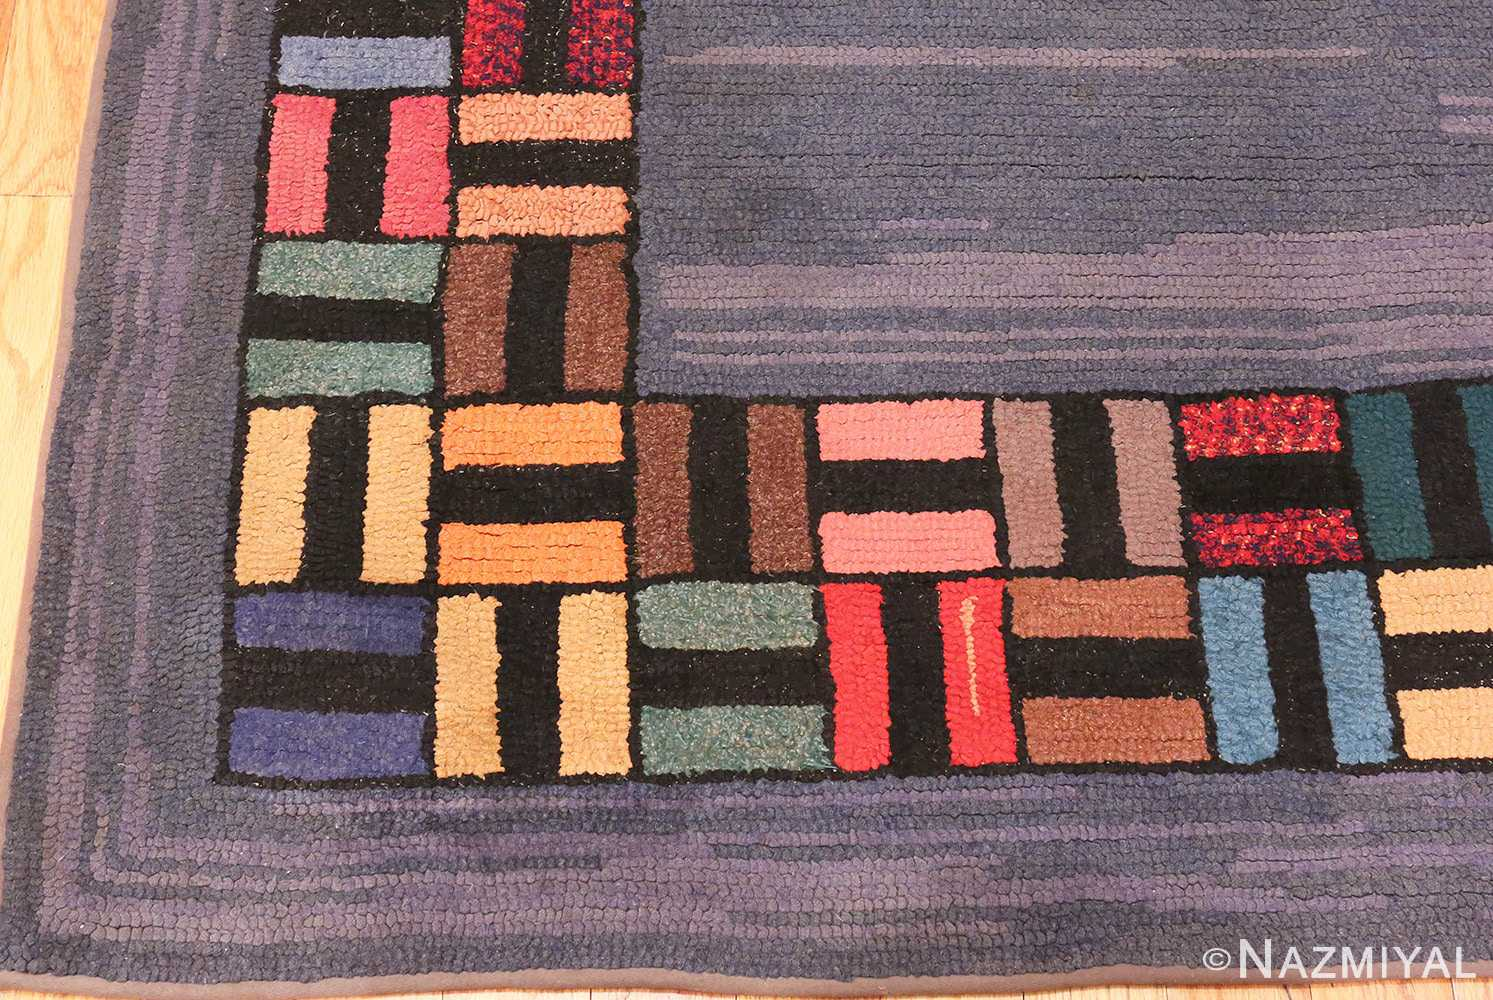 Picture of the corner of Light Blue Antique American Hooked Rug #70057 from Nazmiyal Antique Rugs in NYC